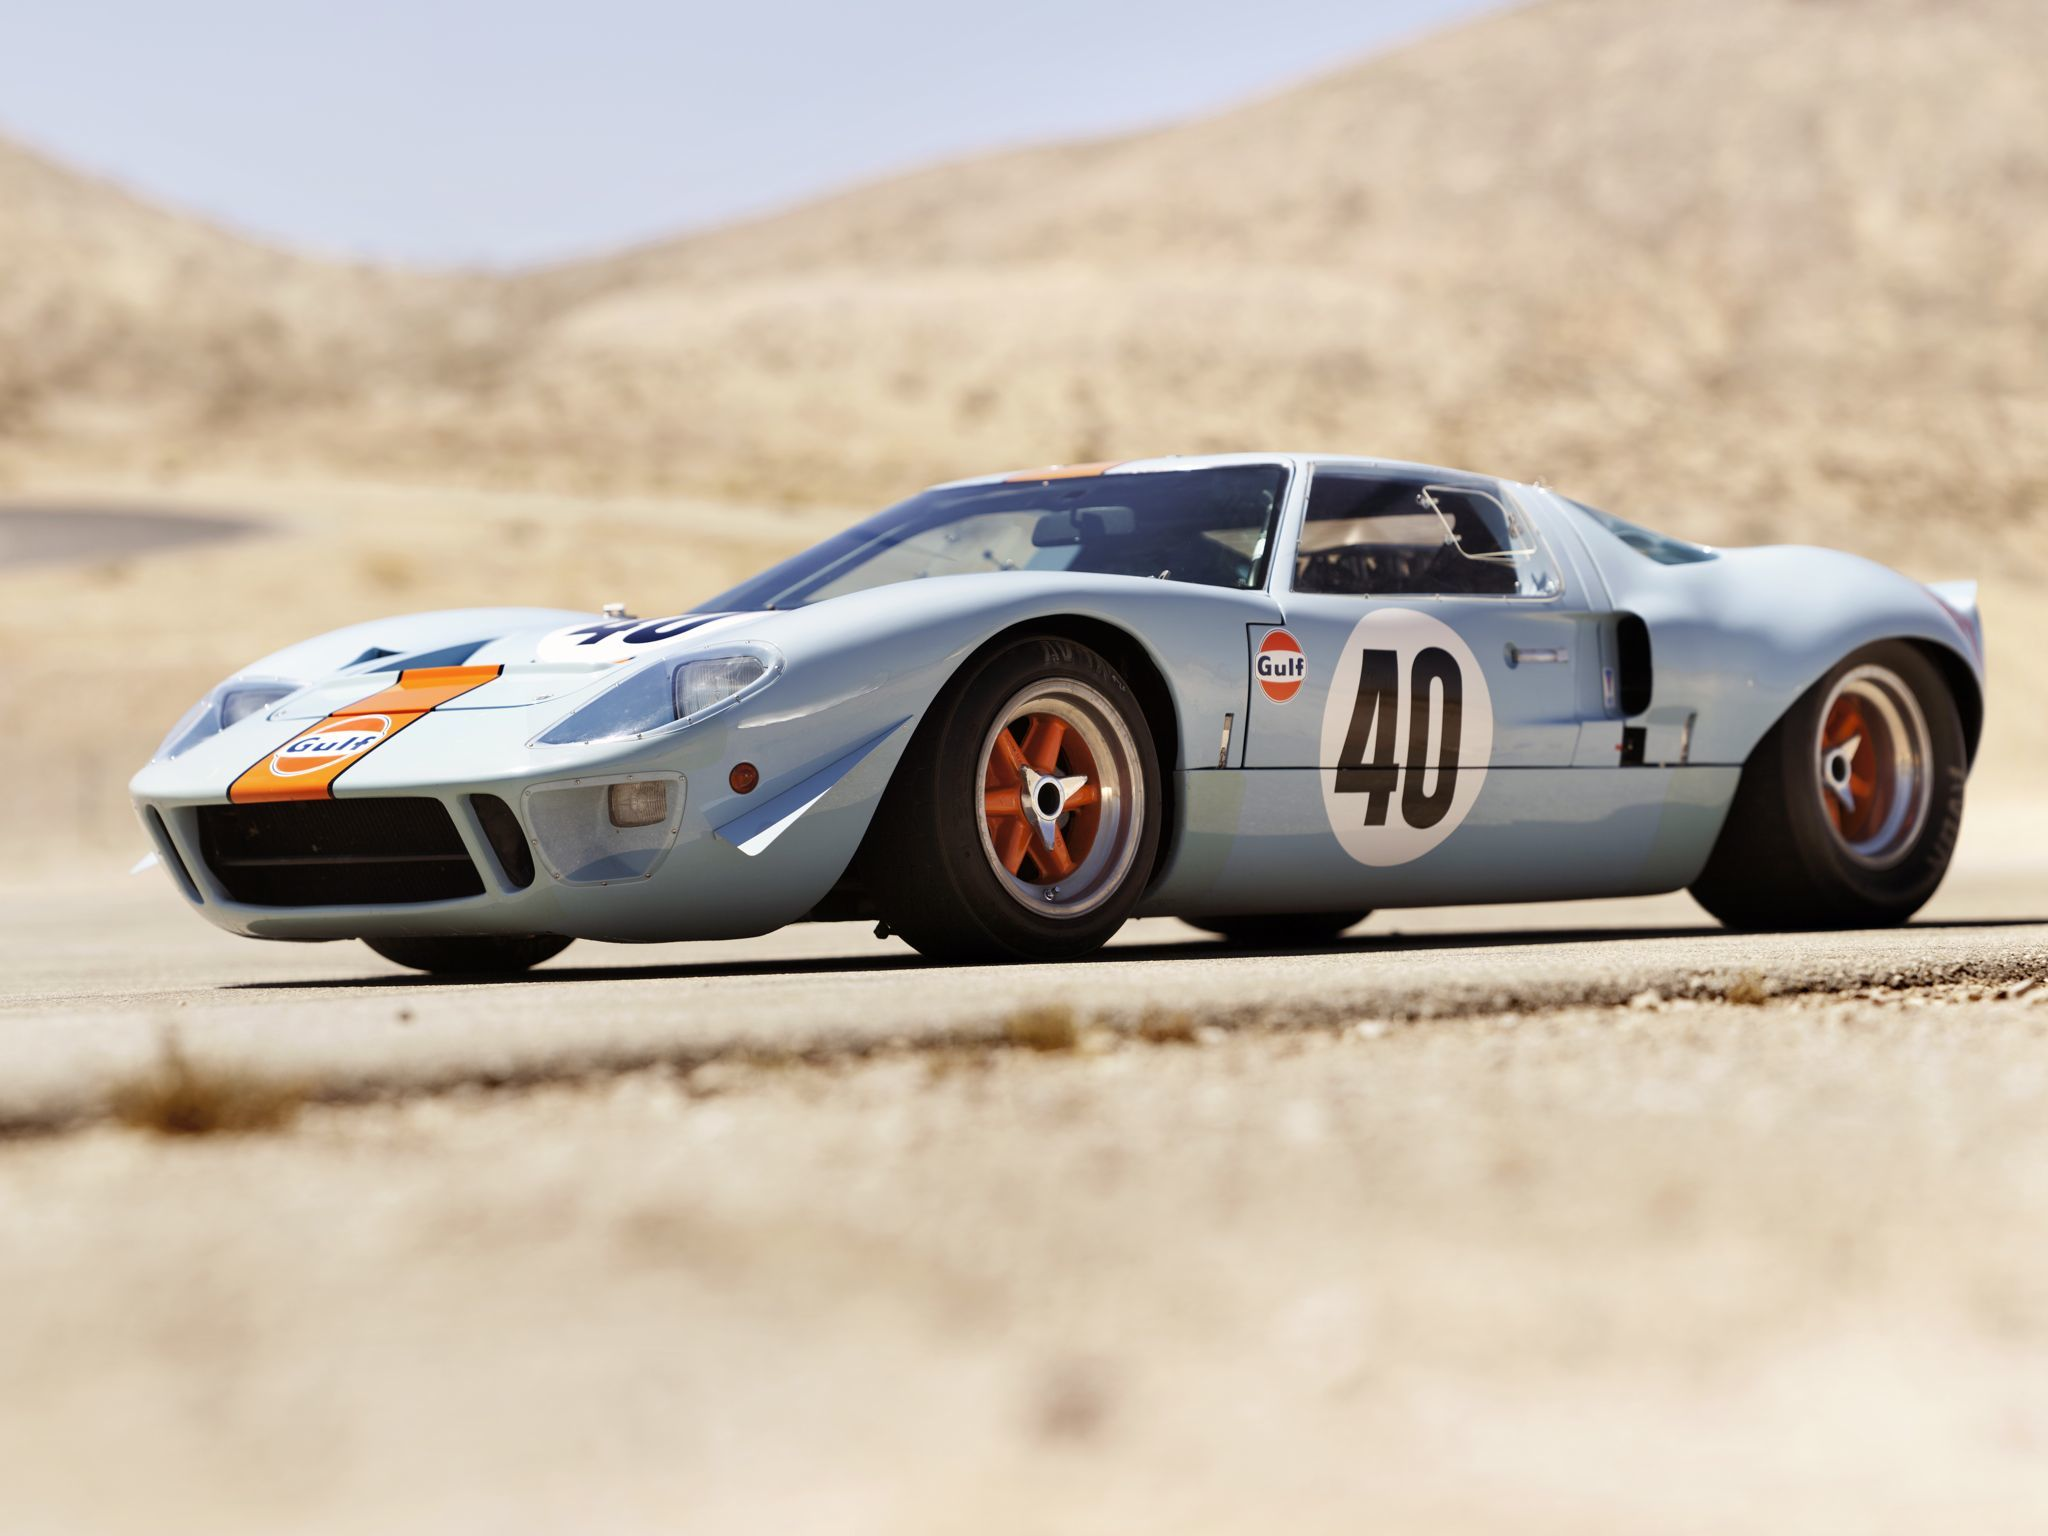 1968 Ford Gt40 Gulf Mirage Lightweight Racing Car Wird